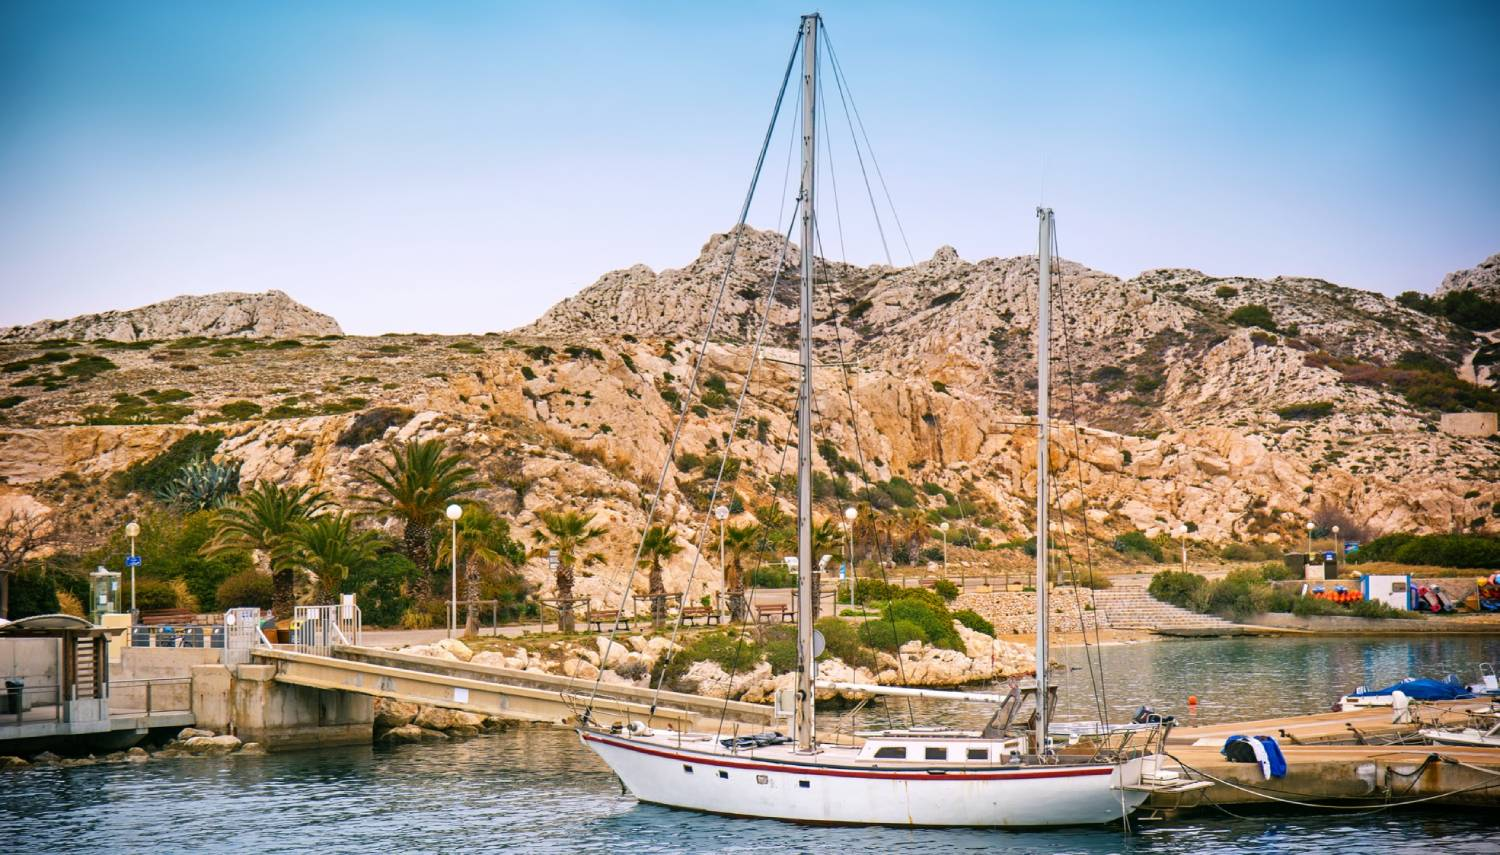 Frioul Archipelago - Things To Do In Marseille